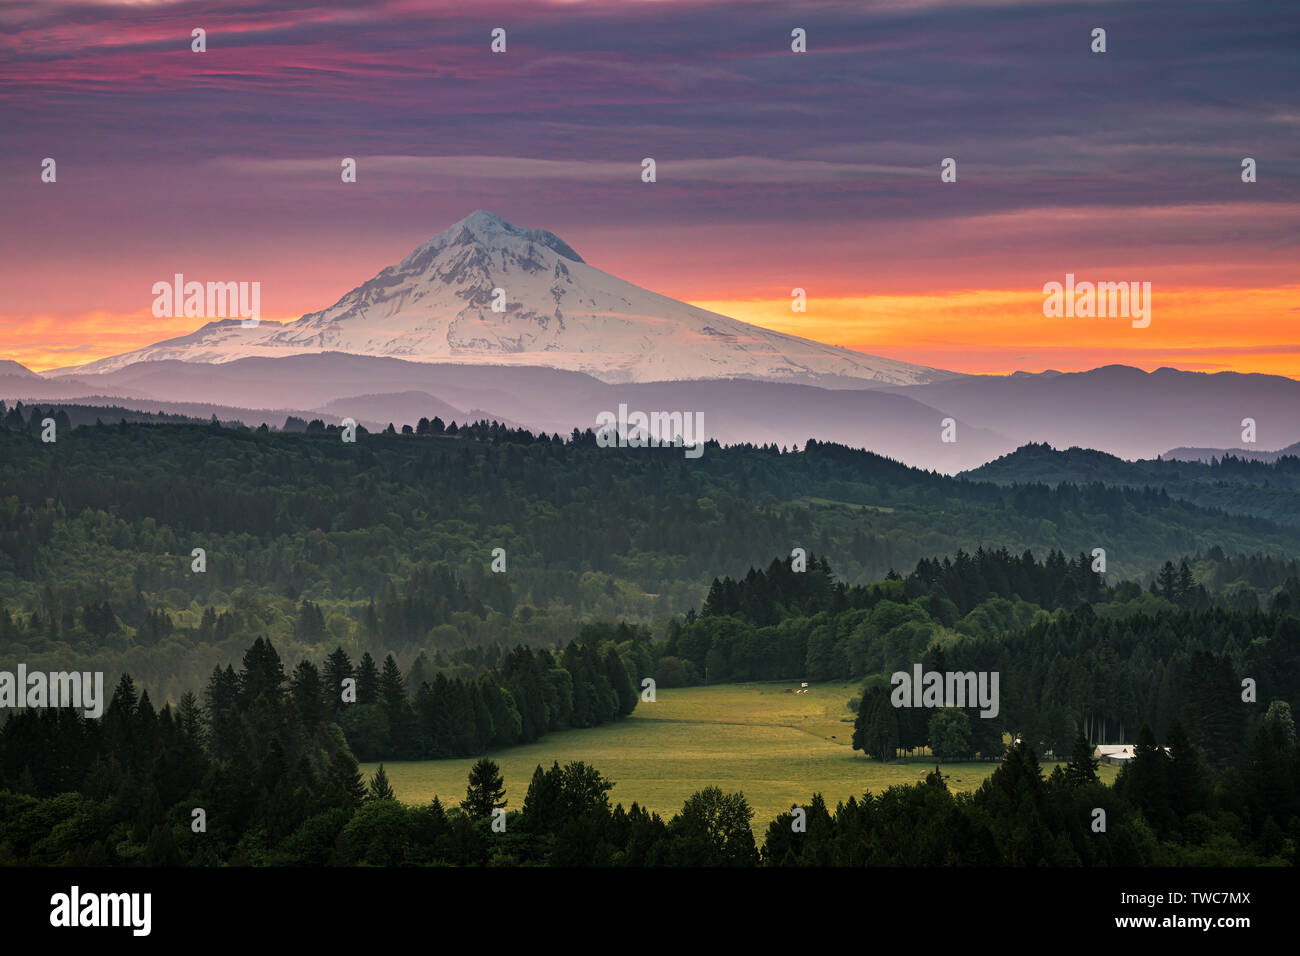 Jonsrud Viewpoint is a viewpoint located in the city of Sandy in the U.S. state of Oregon. The viewpoint offers telescopes and expansive views of Moun - Stock Image